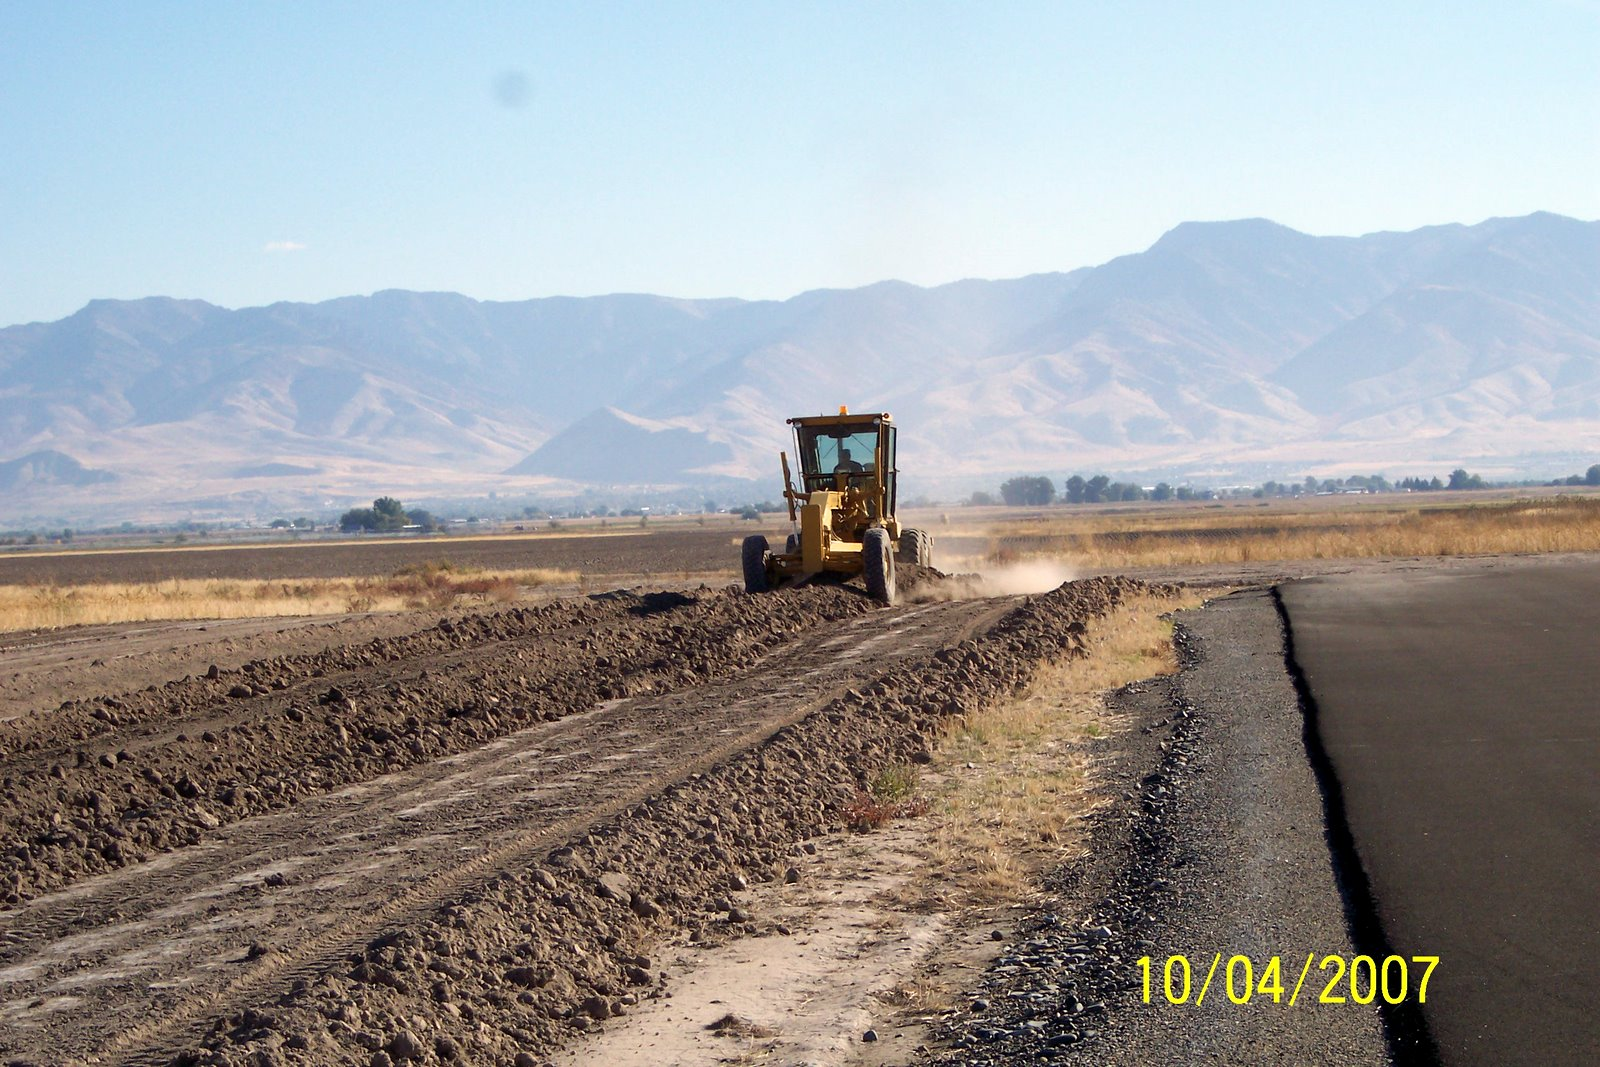 FARMER ROUNDY HELPING WITH MOVING SOIL TO HELP WITH RUNWAY TAPPER.